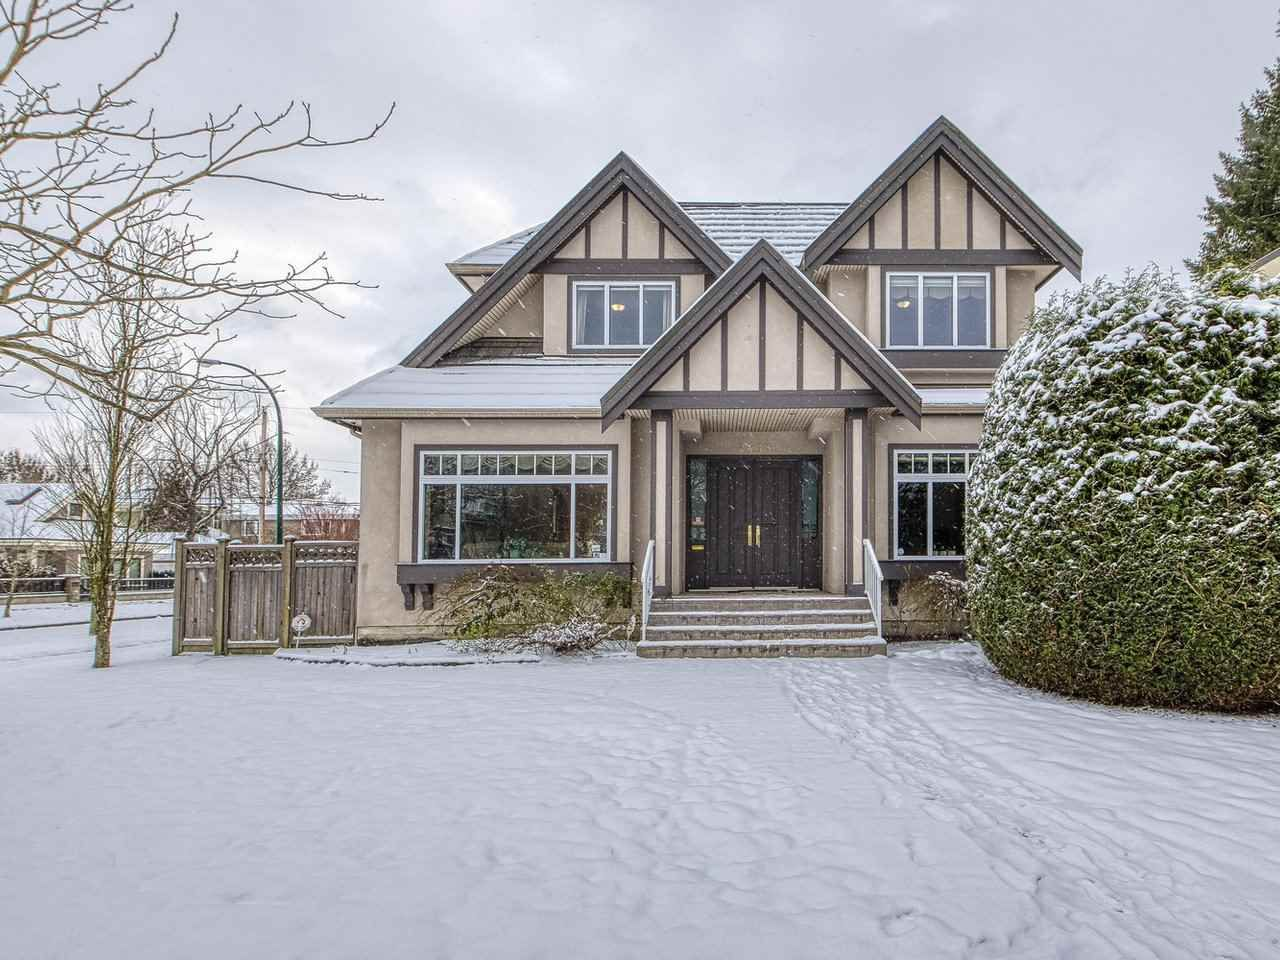 Main Photo: 2408 W 20TH Avenue in Vancouver: Arbutus House for sale (Vancouver West)  : MLS®# R2439079